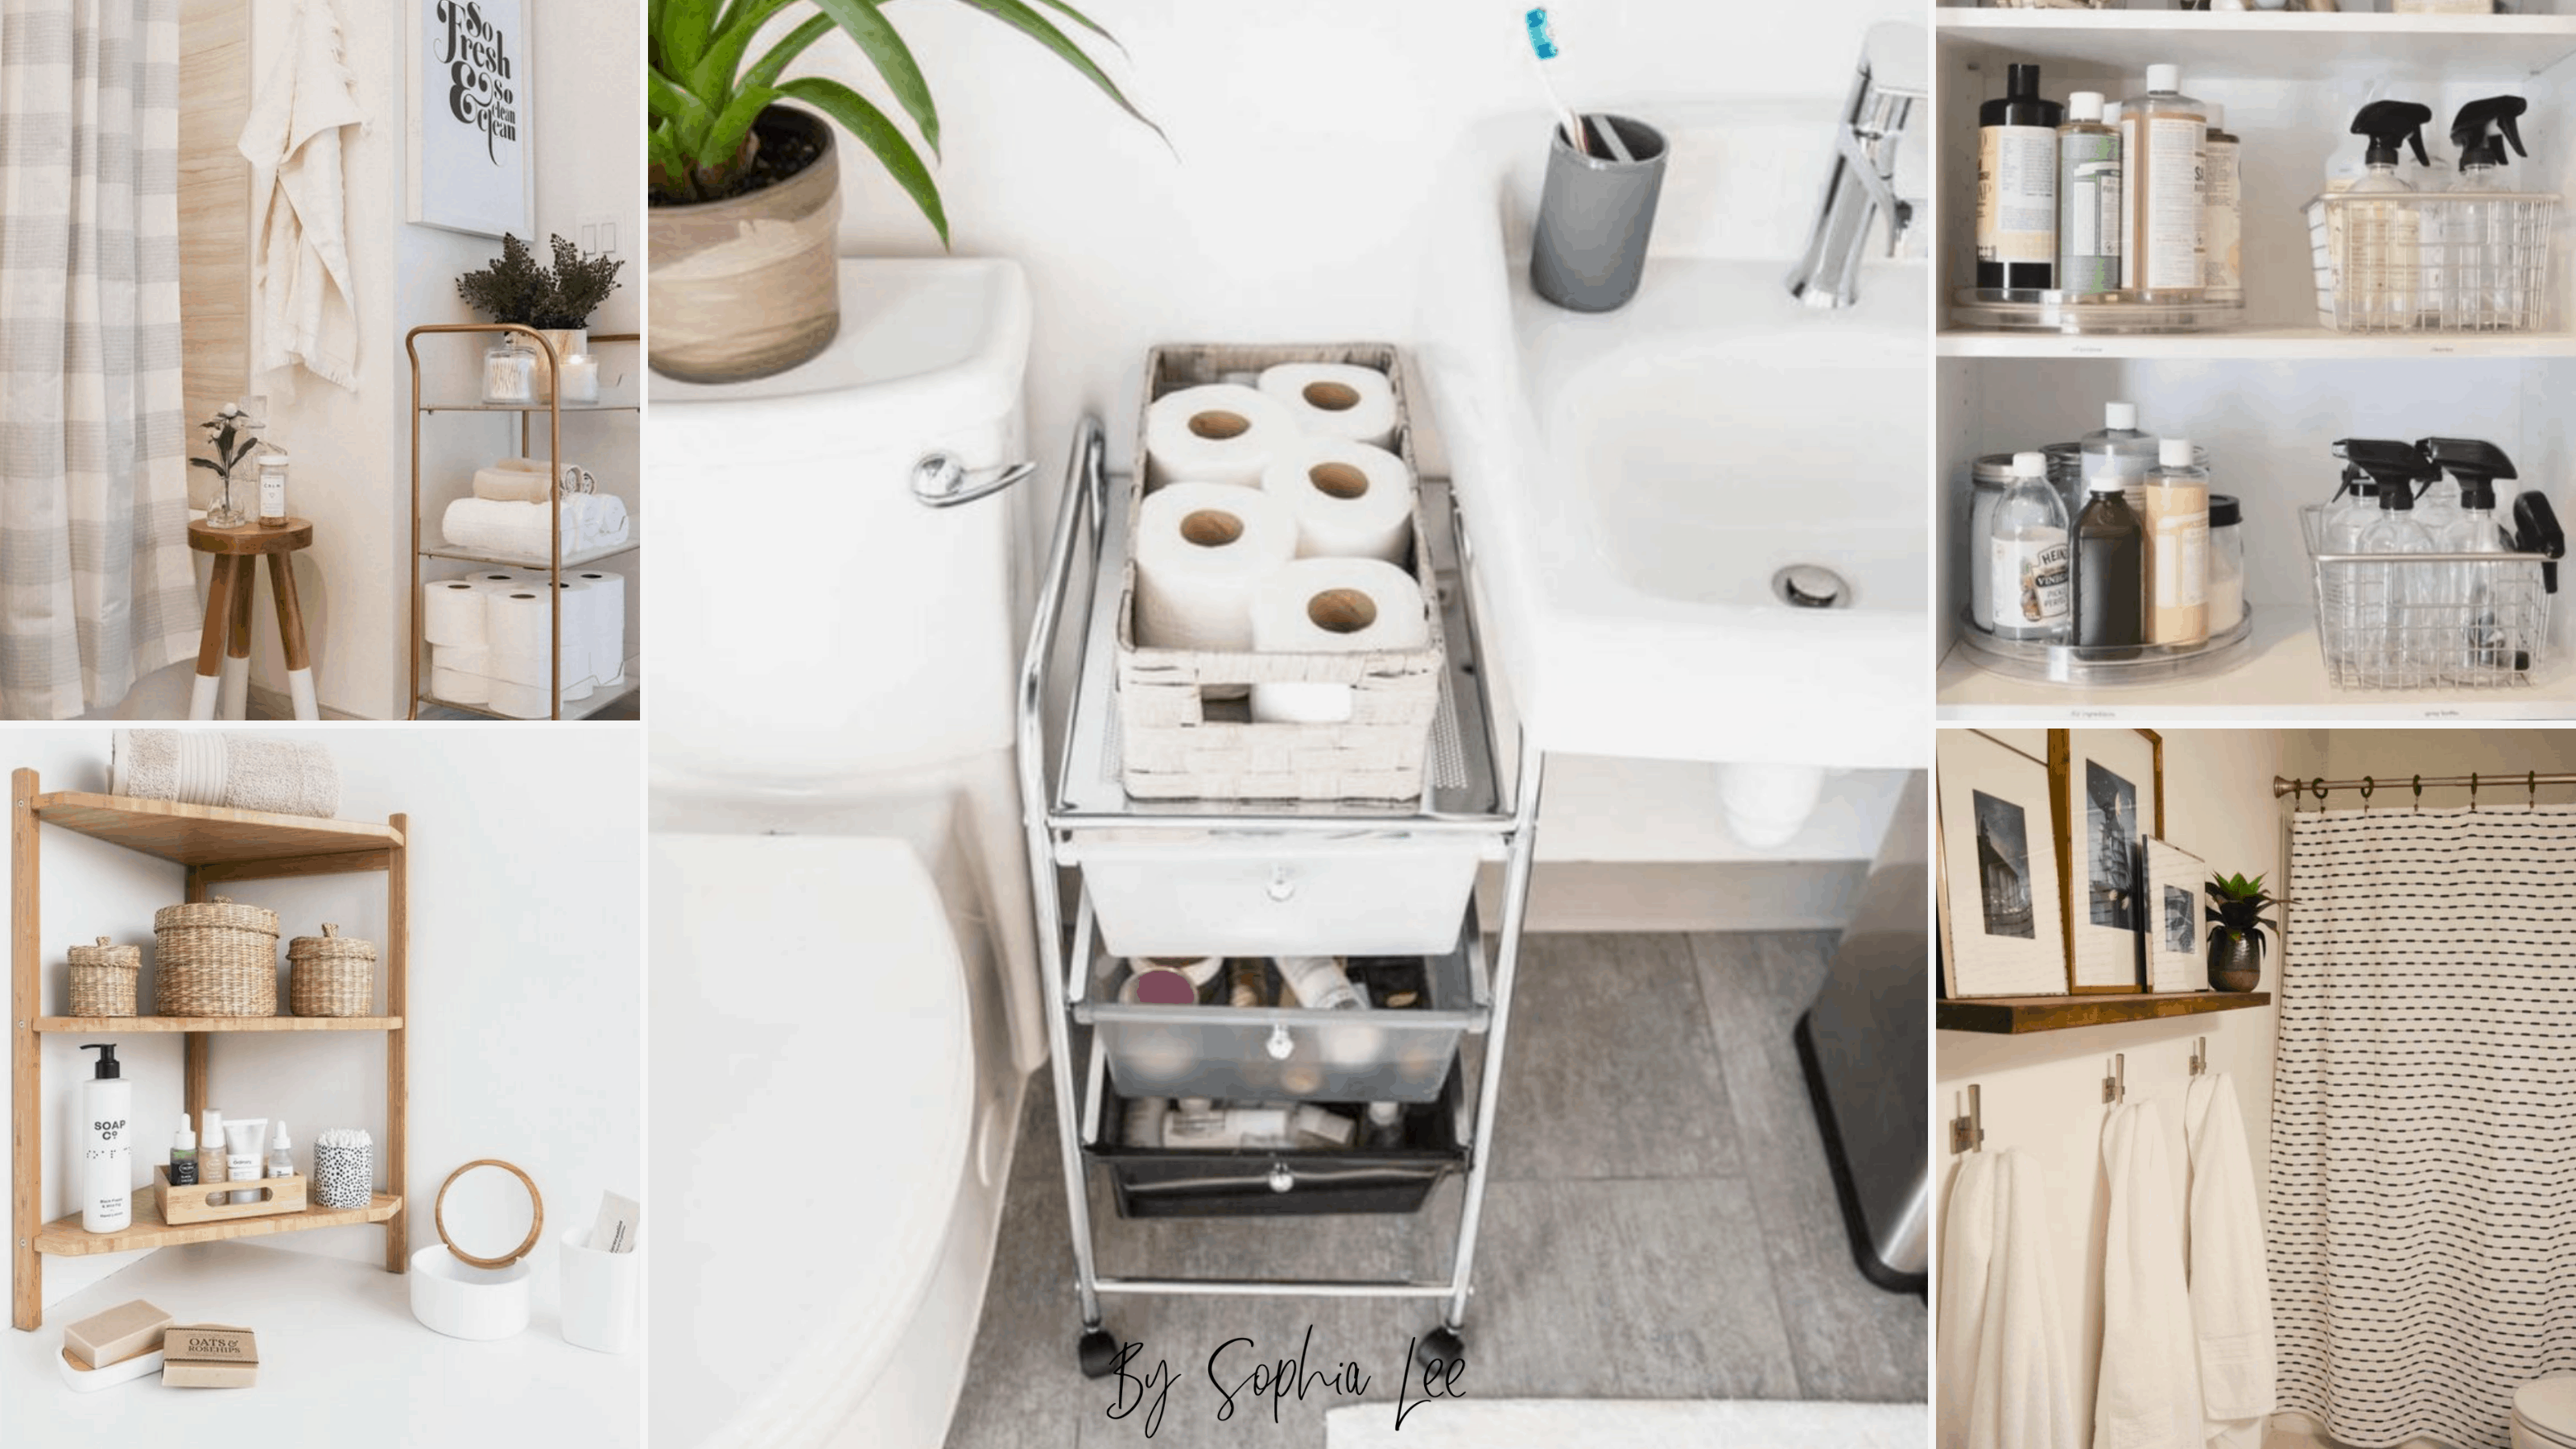 21 College Apartment Bathroom Ideas That Prove You Can Make Bathrooms Look Good By Sophia Lee